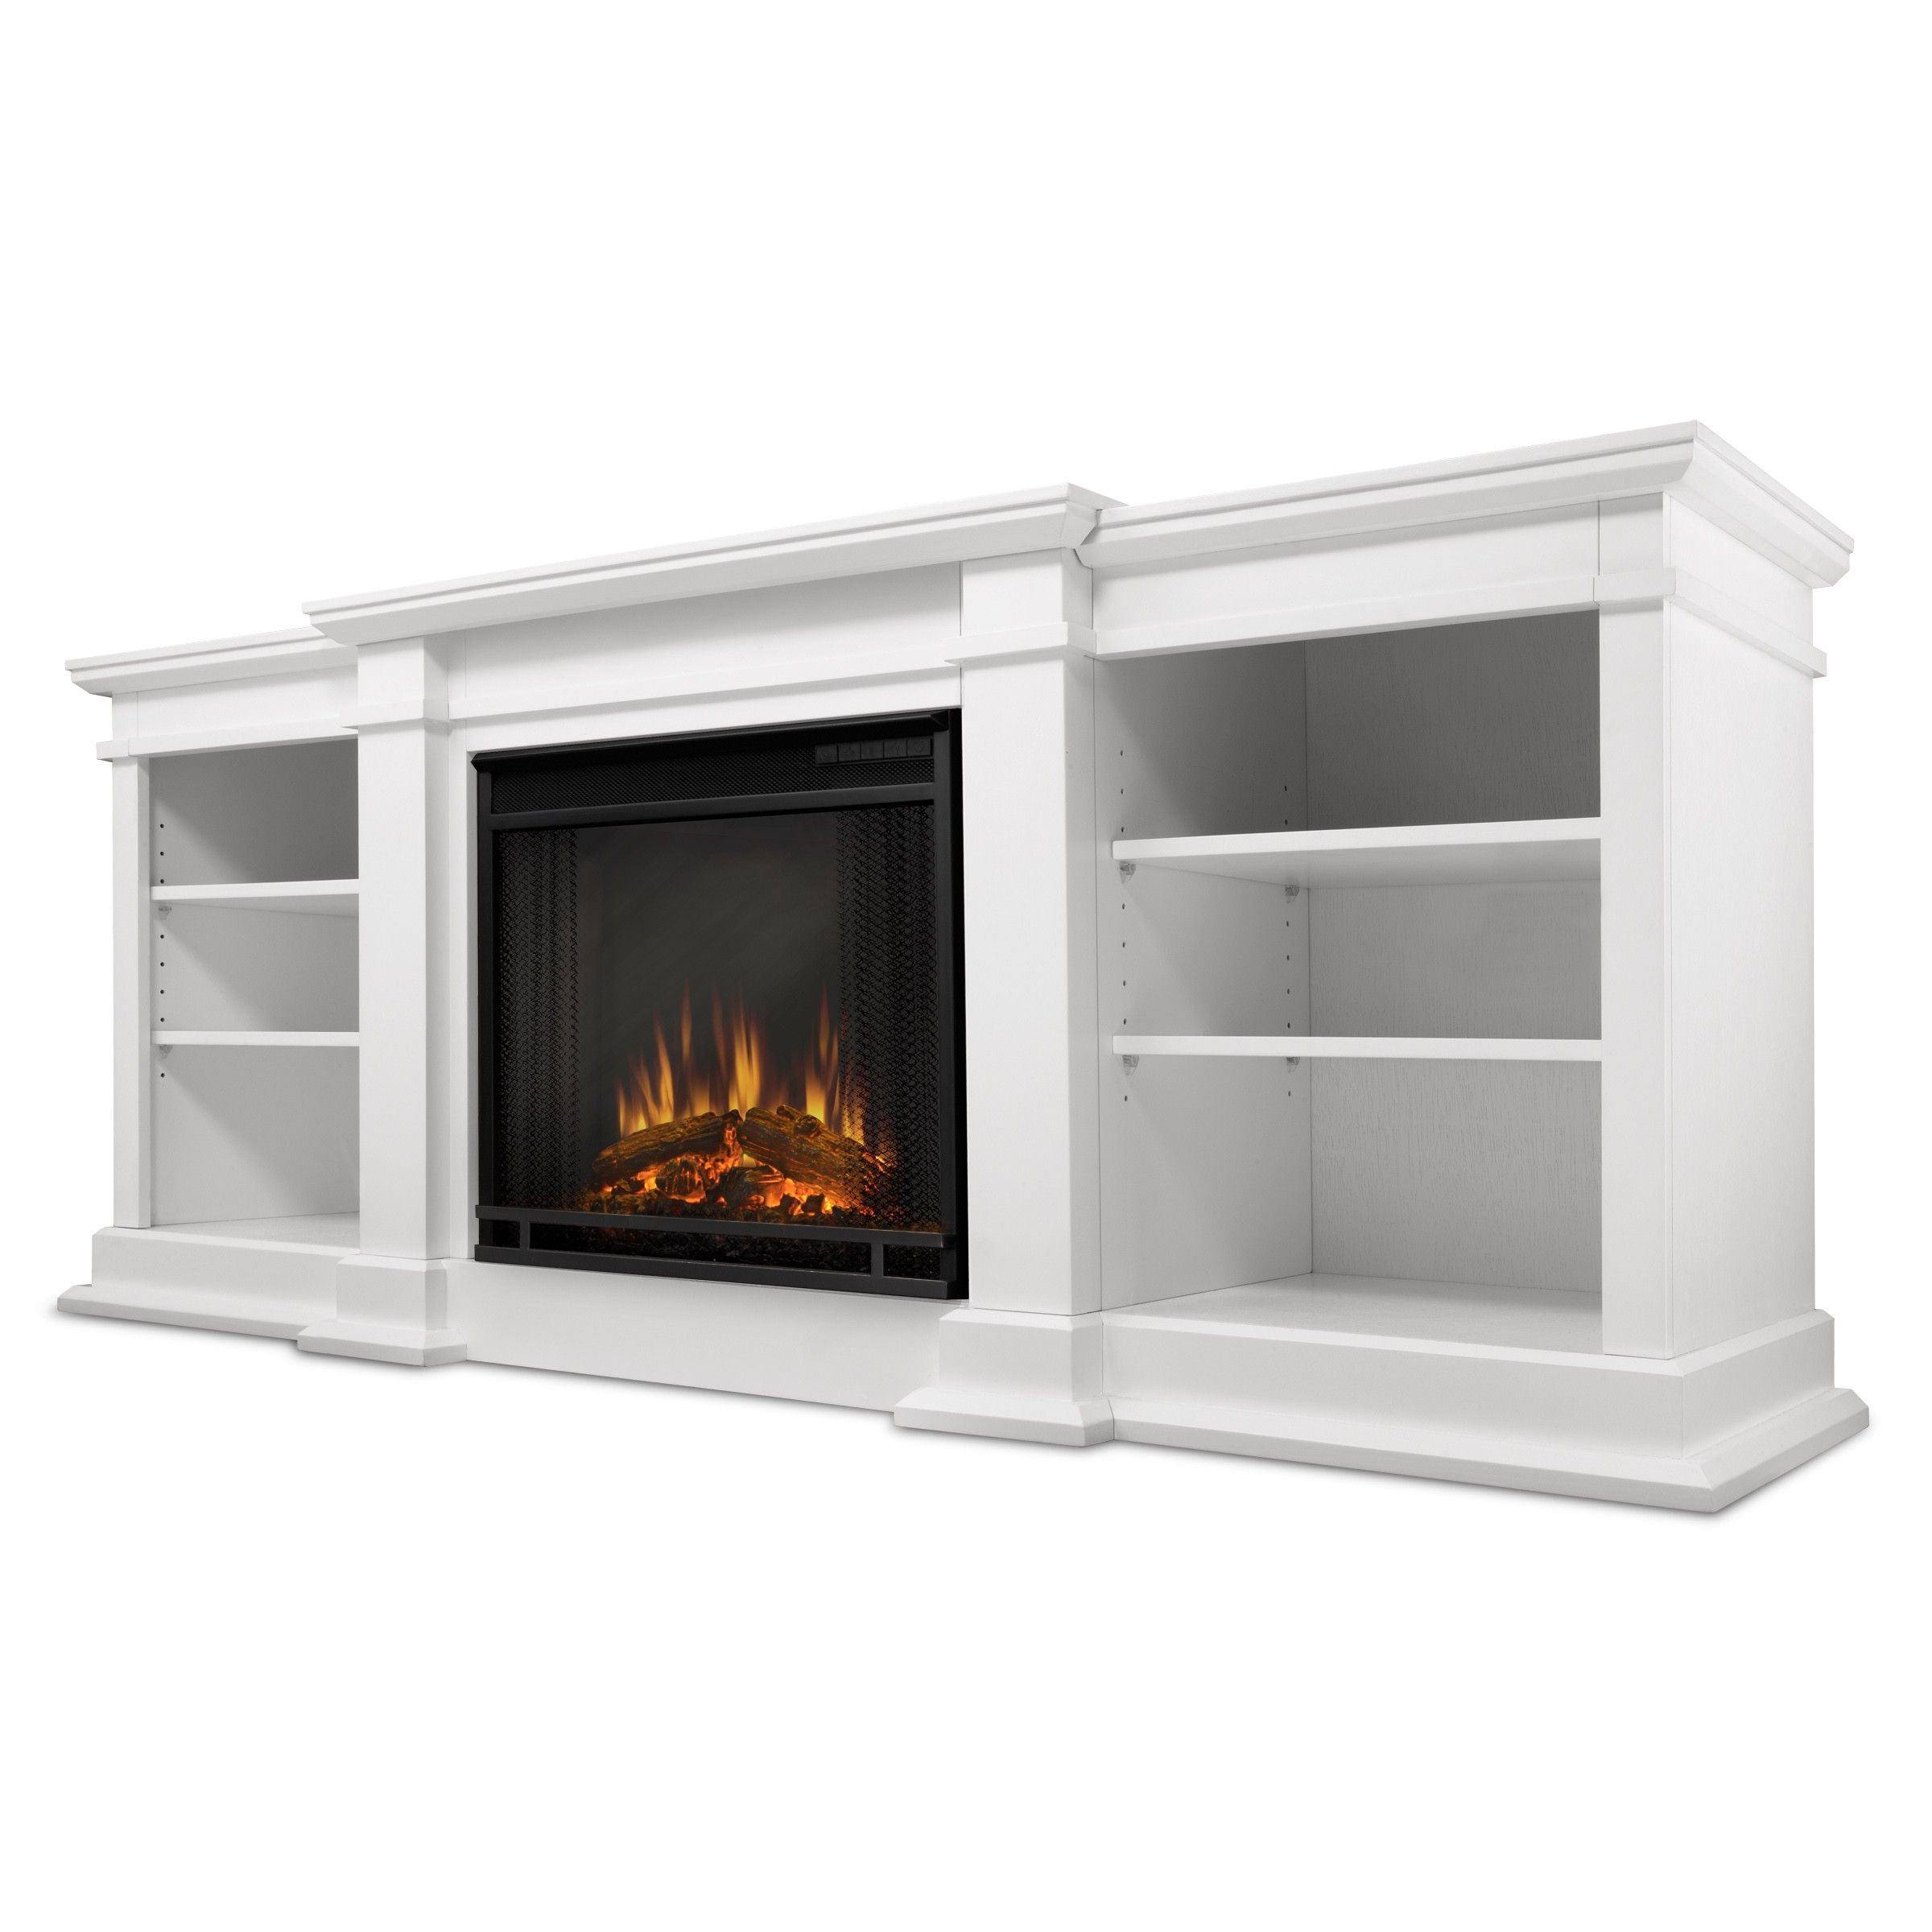 Electric Fireplace Home Depot Latest Concept Dimplex Electric